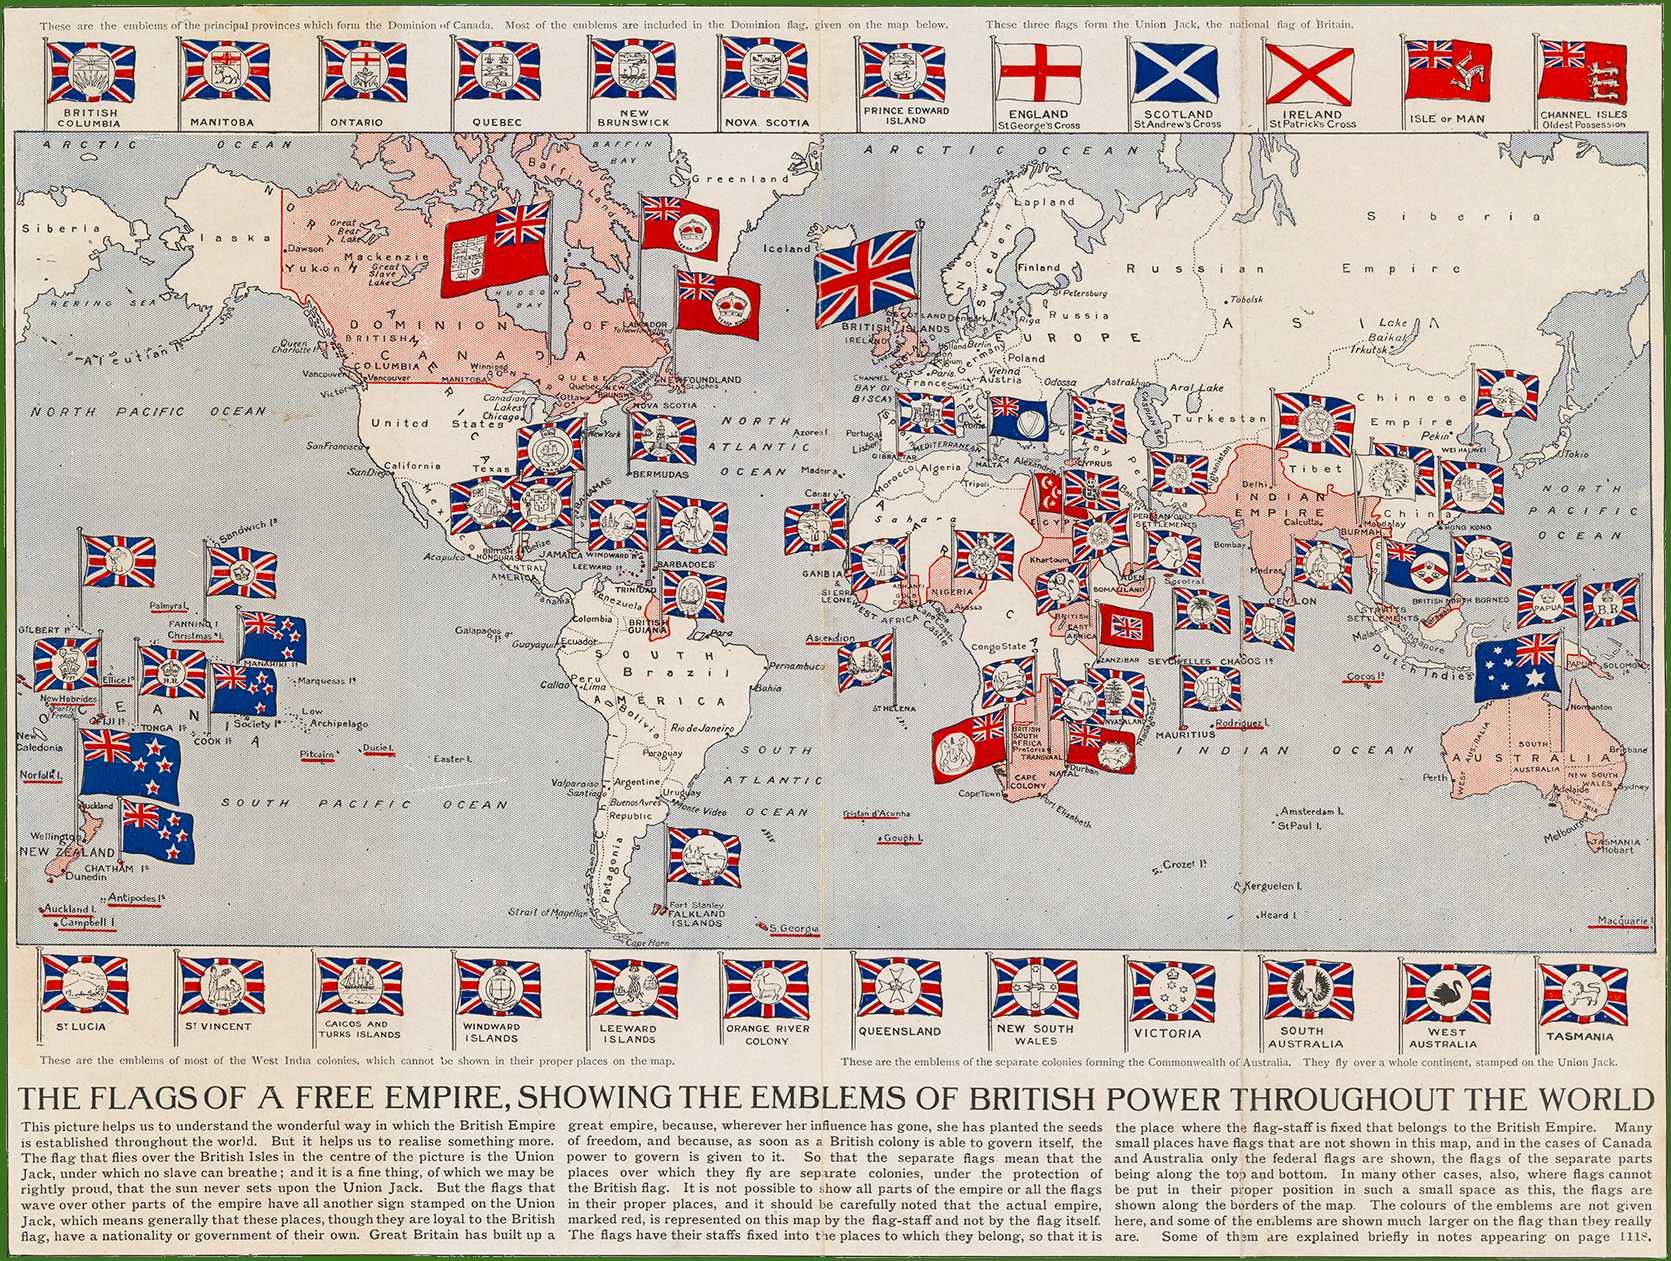 Flags of a Free Empire, 1910